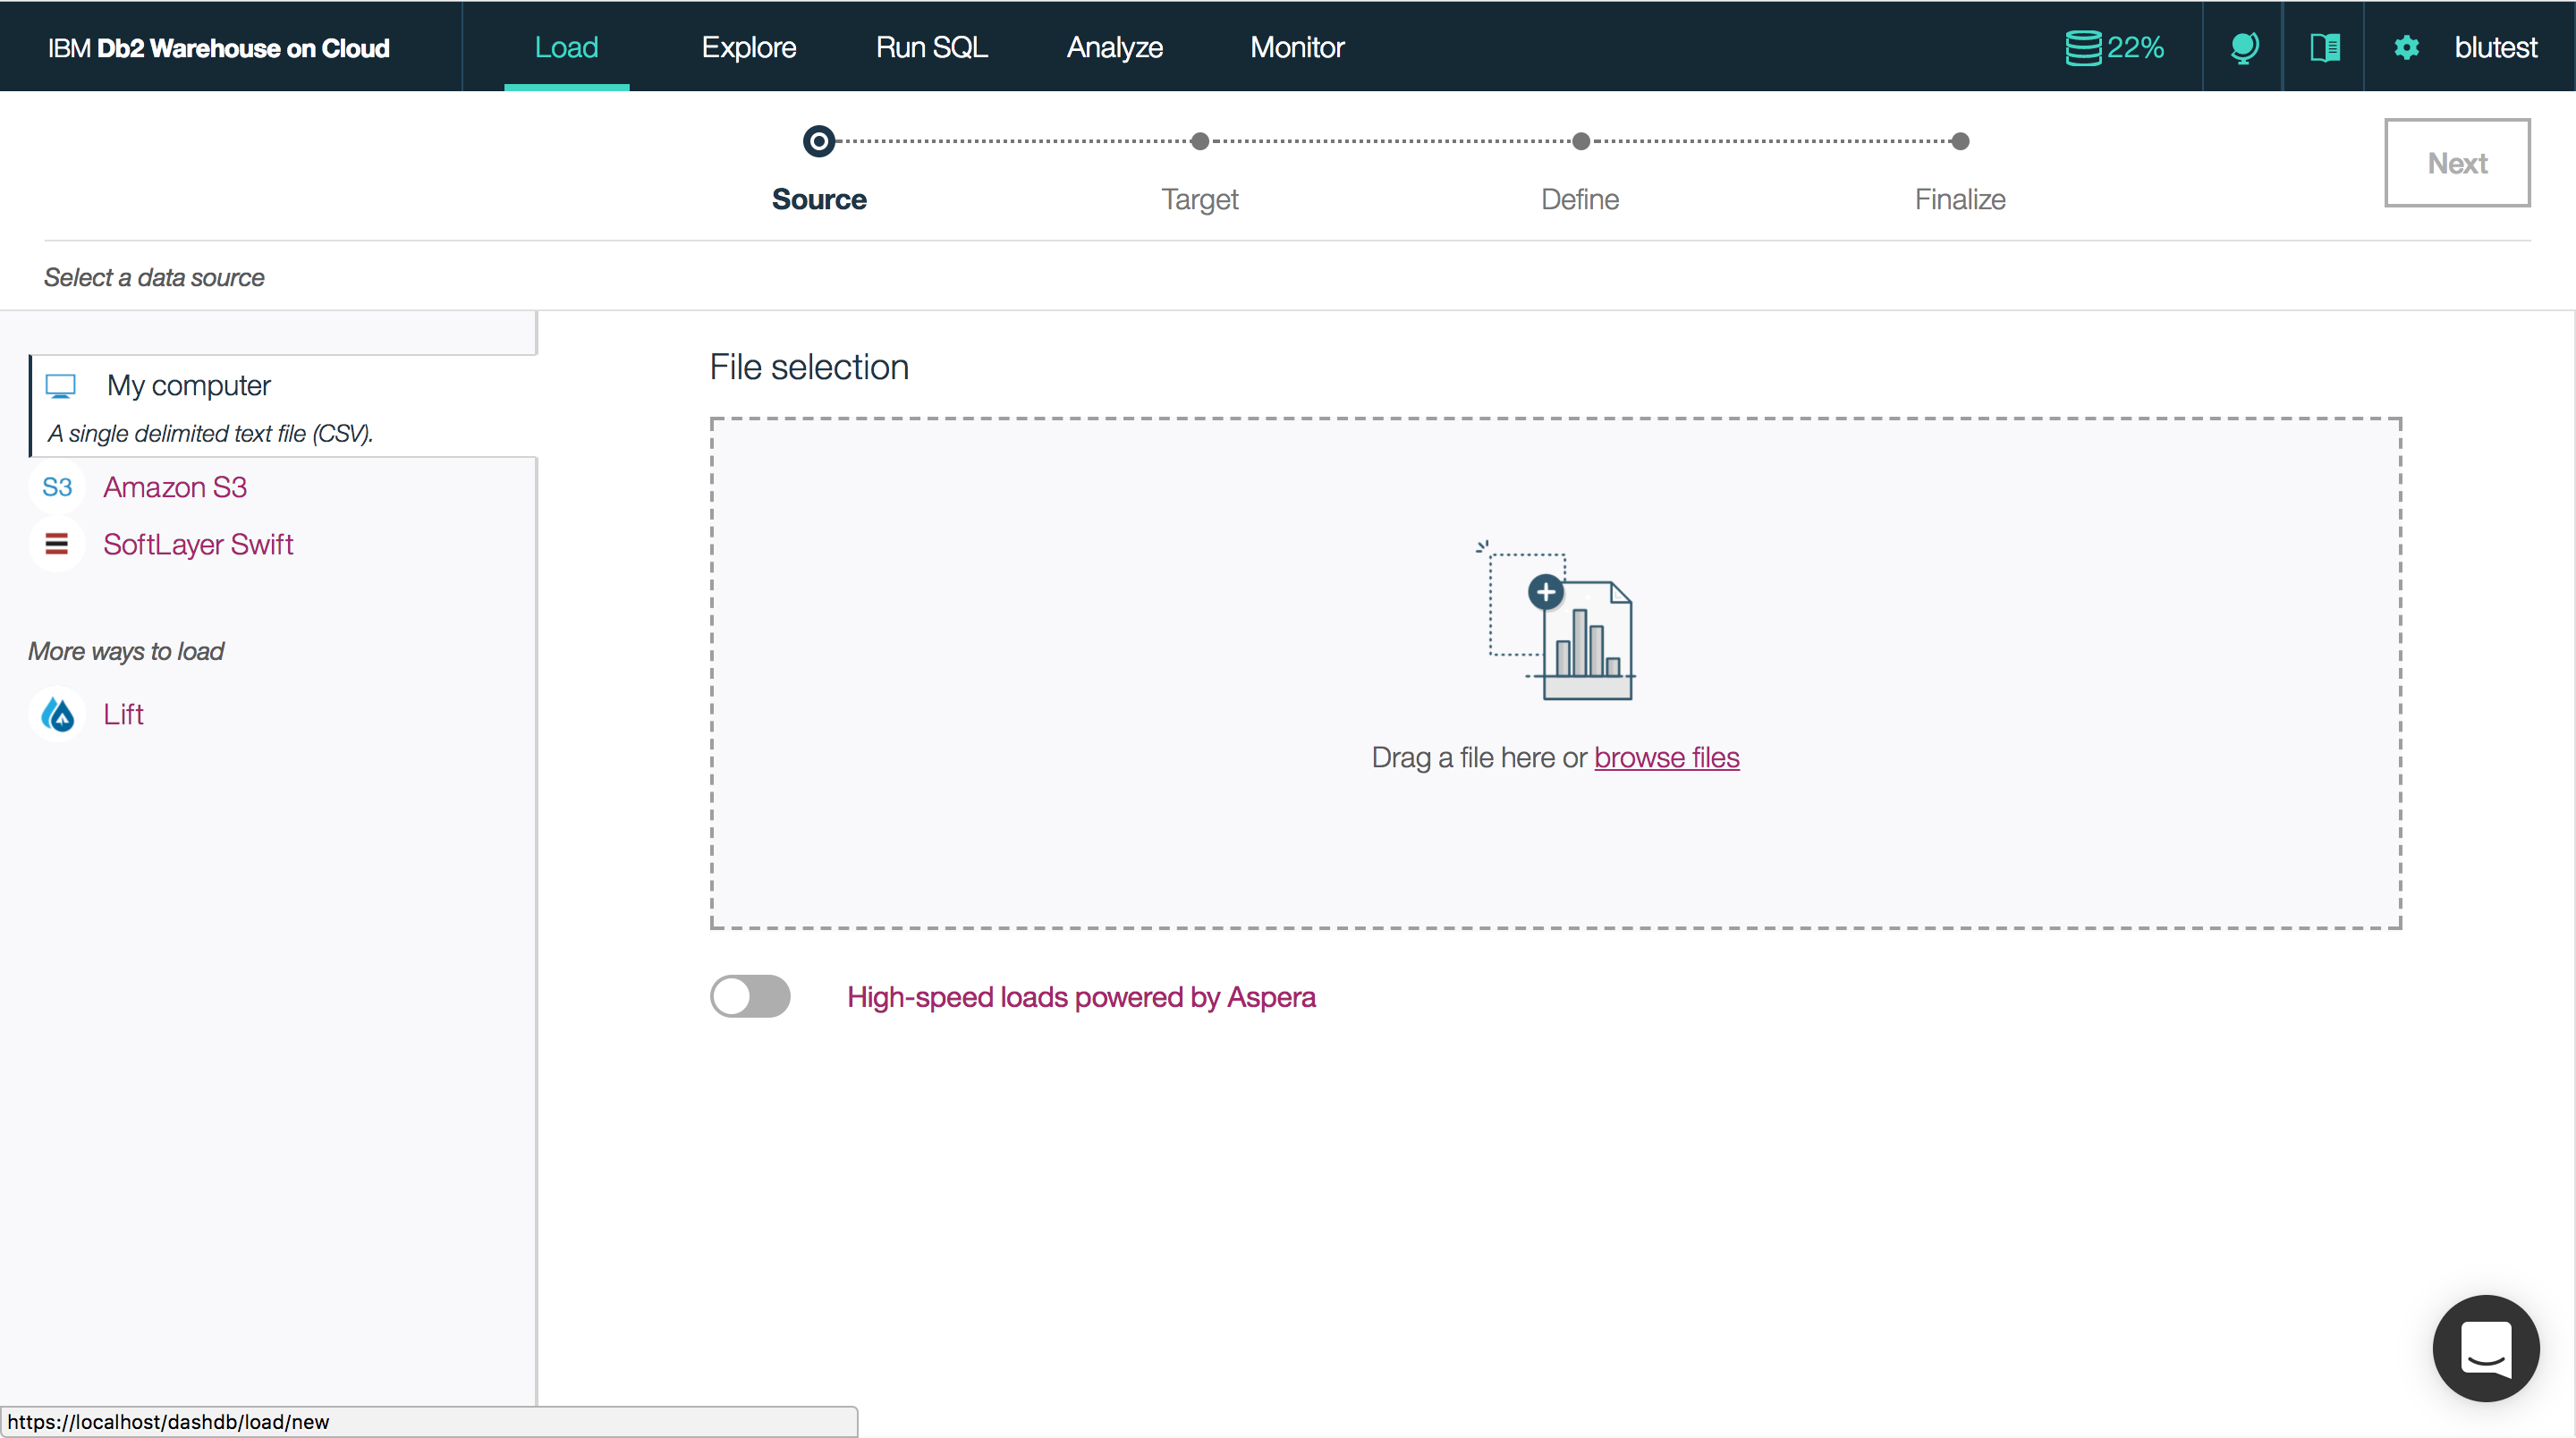 Drag and drop files from your computer, load from Amazon S3 or SoftLayer Swift, or use Bluemix Lift for high-speed data loads from a PureData System for Analytics (Netezza) appliance.